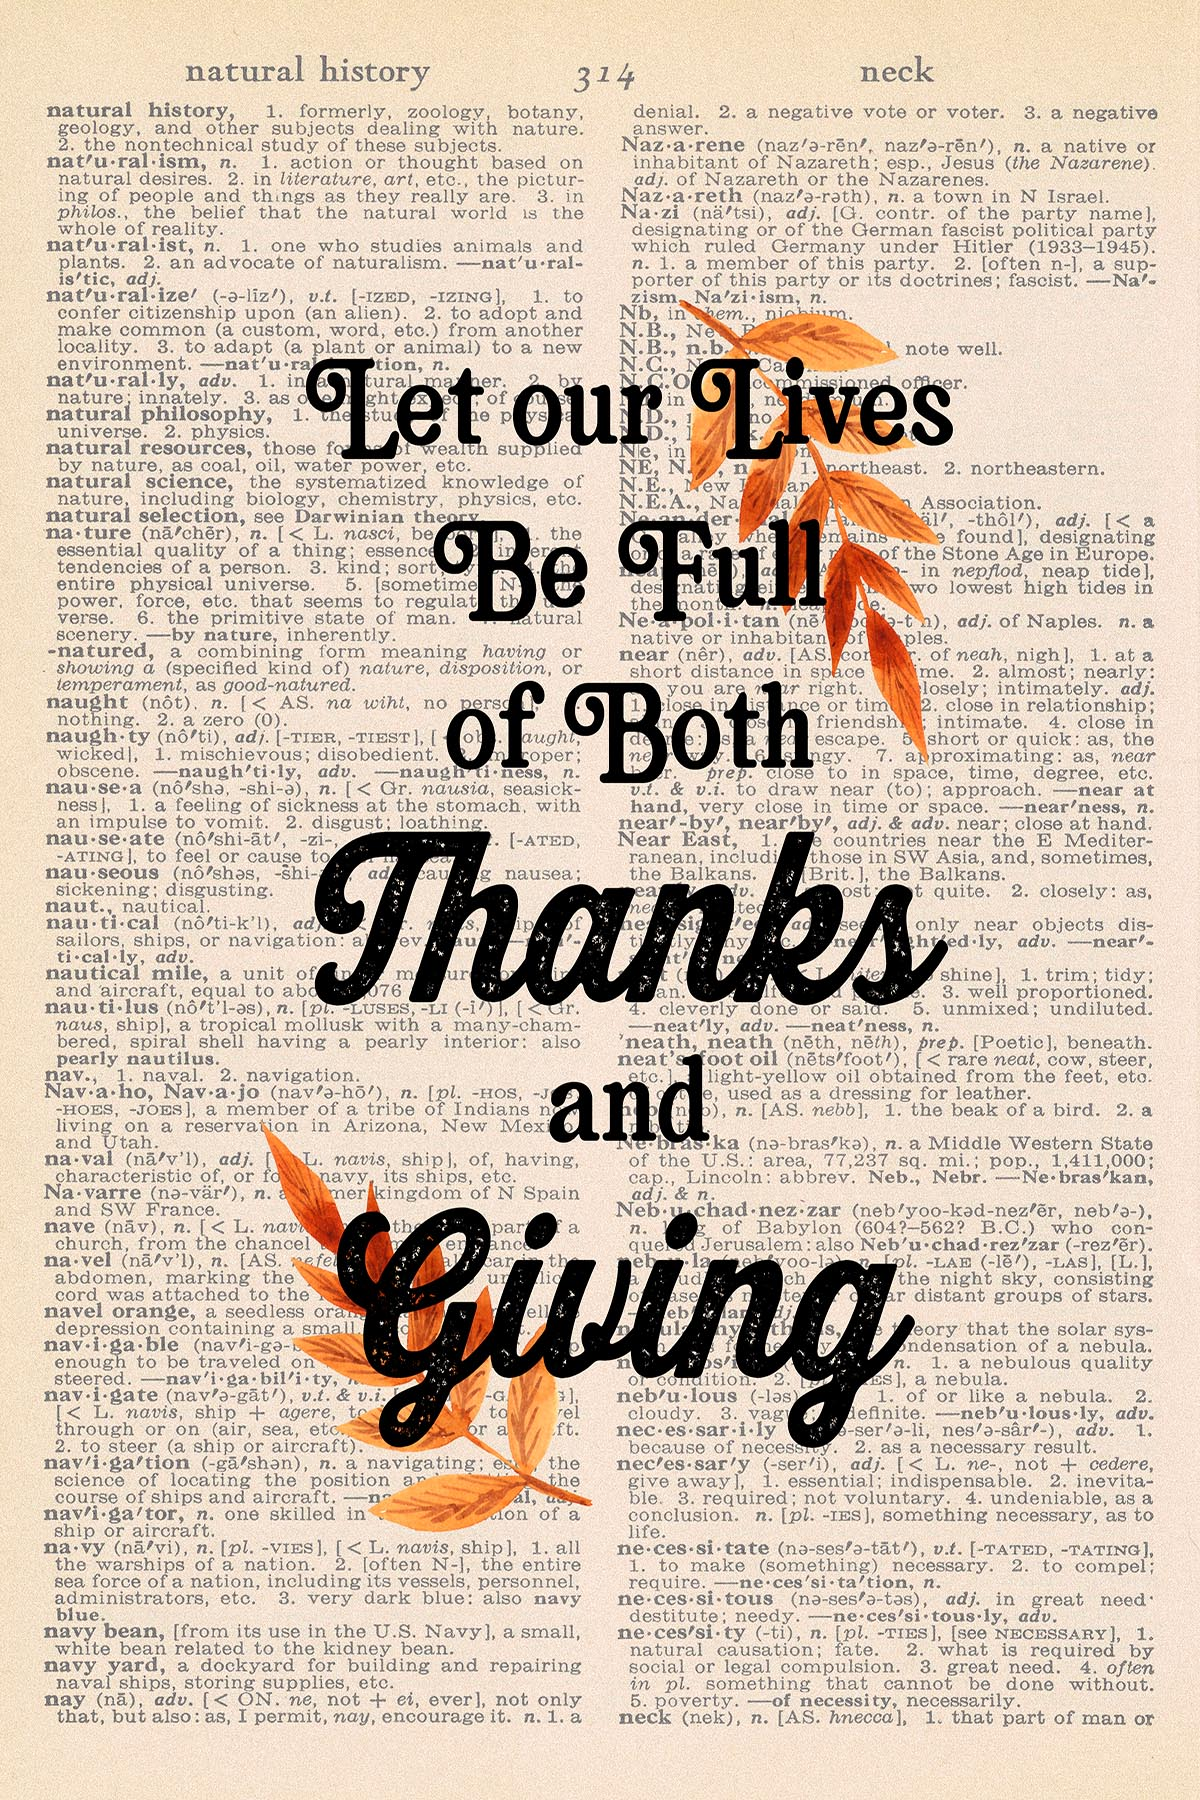 Printable Thanksgiving Dictionary Page Let Our Lives Be Full of Both Thanks and Giving